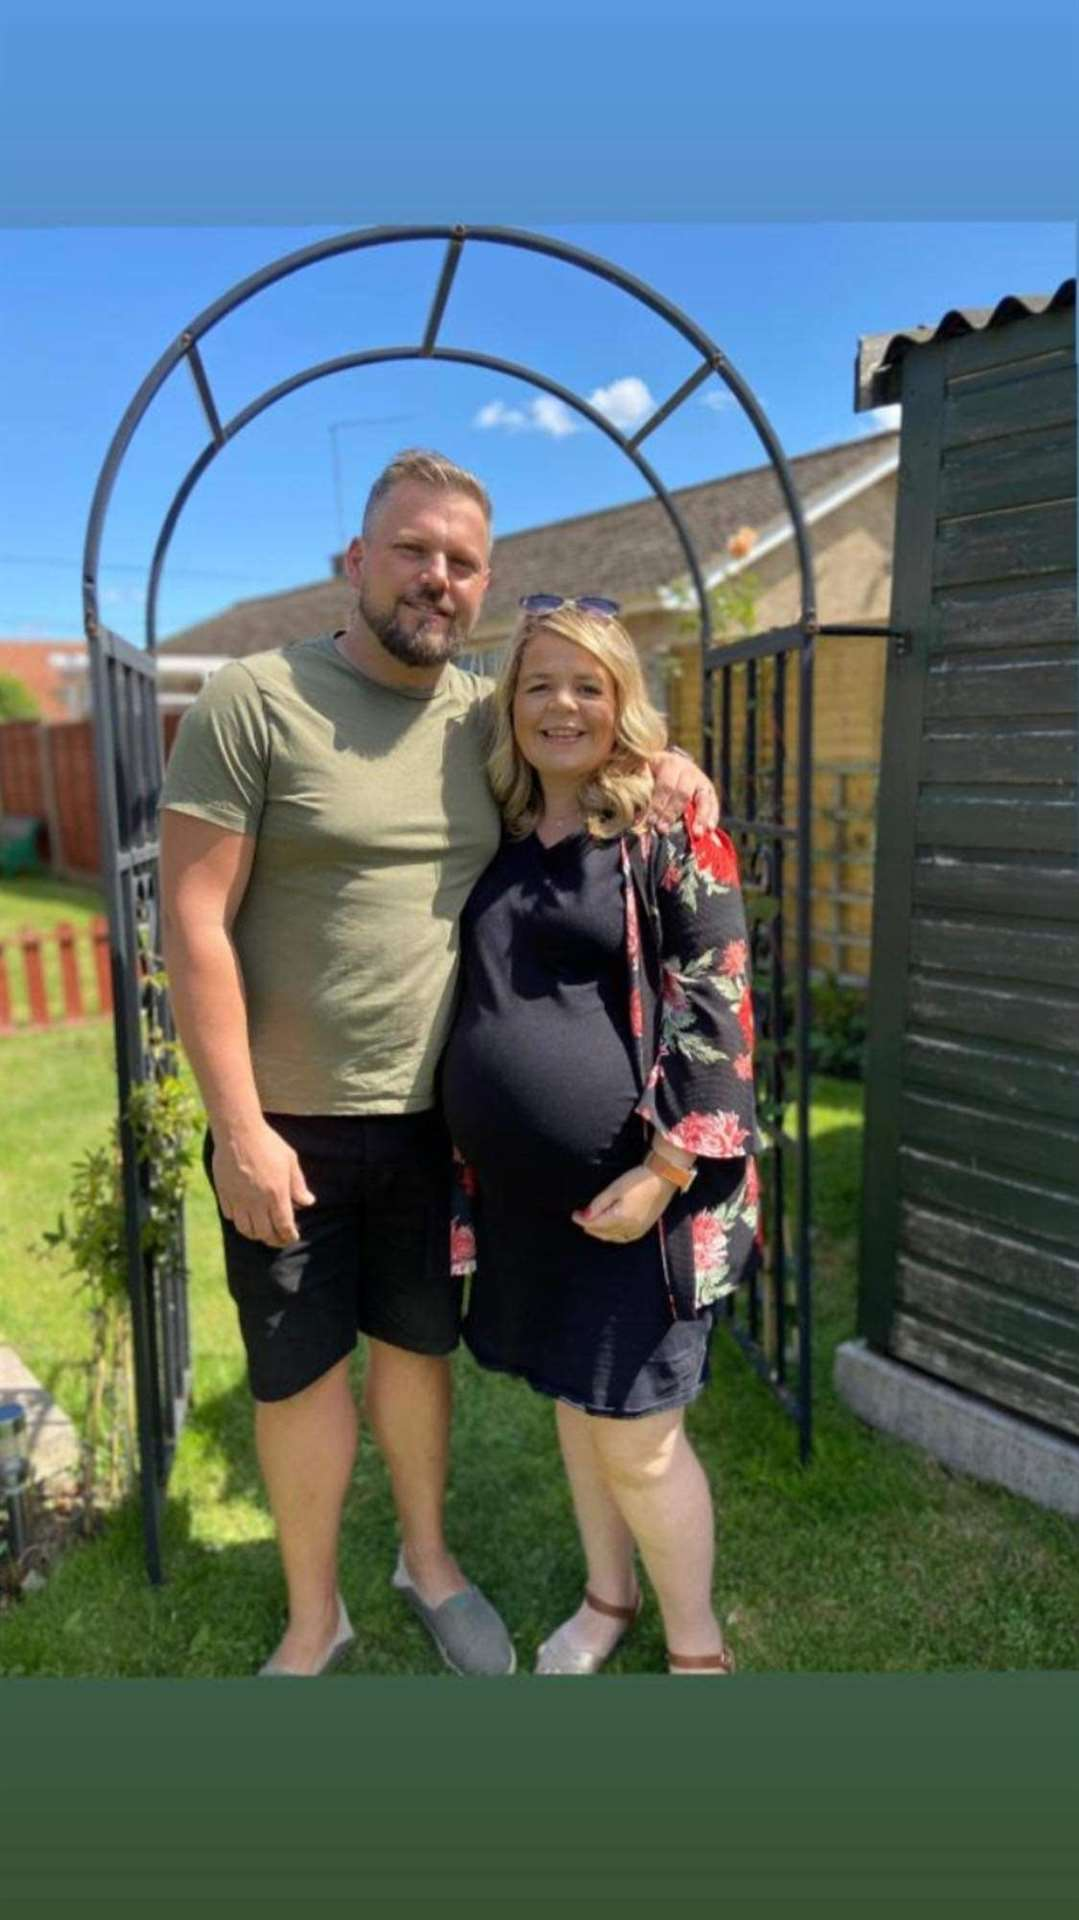 Jason and Joanne Hardy, of South Wootton, whose baby girl was born sleeping at the Queen Elizabeth Hospital in August. Picture: SUBMITTED